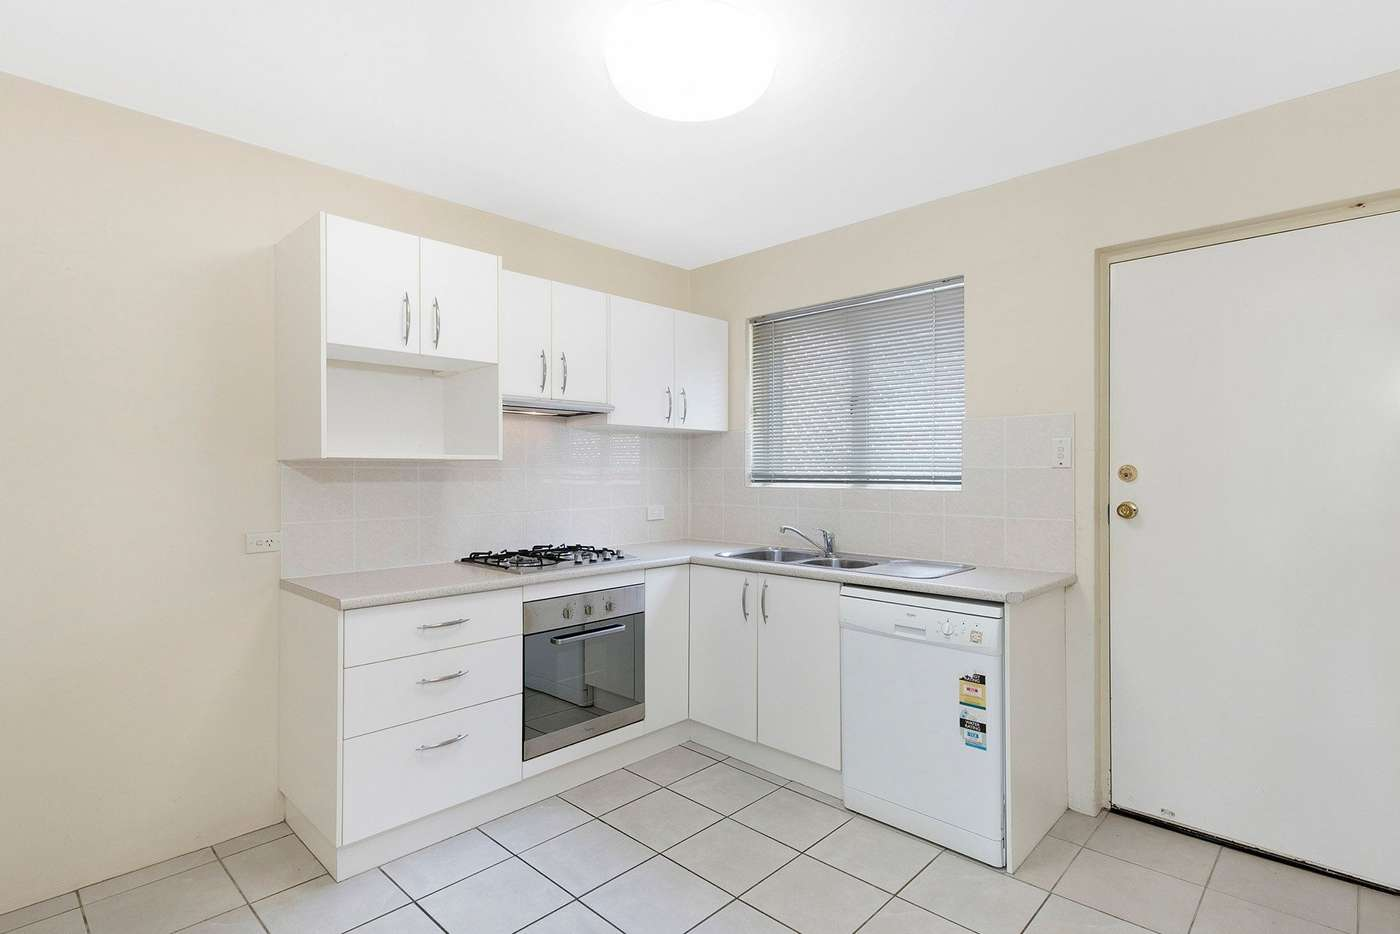 Fifth view of Homely unit listing, 3/40 Raffles Street, Mount Gravatt East QLD 4122